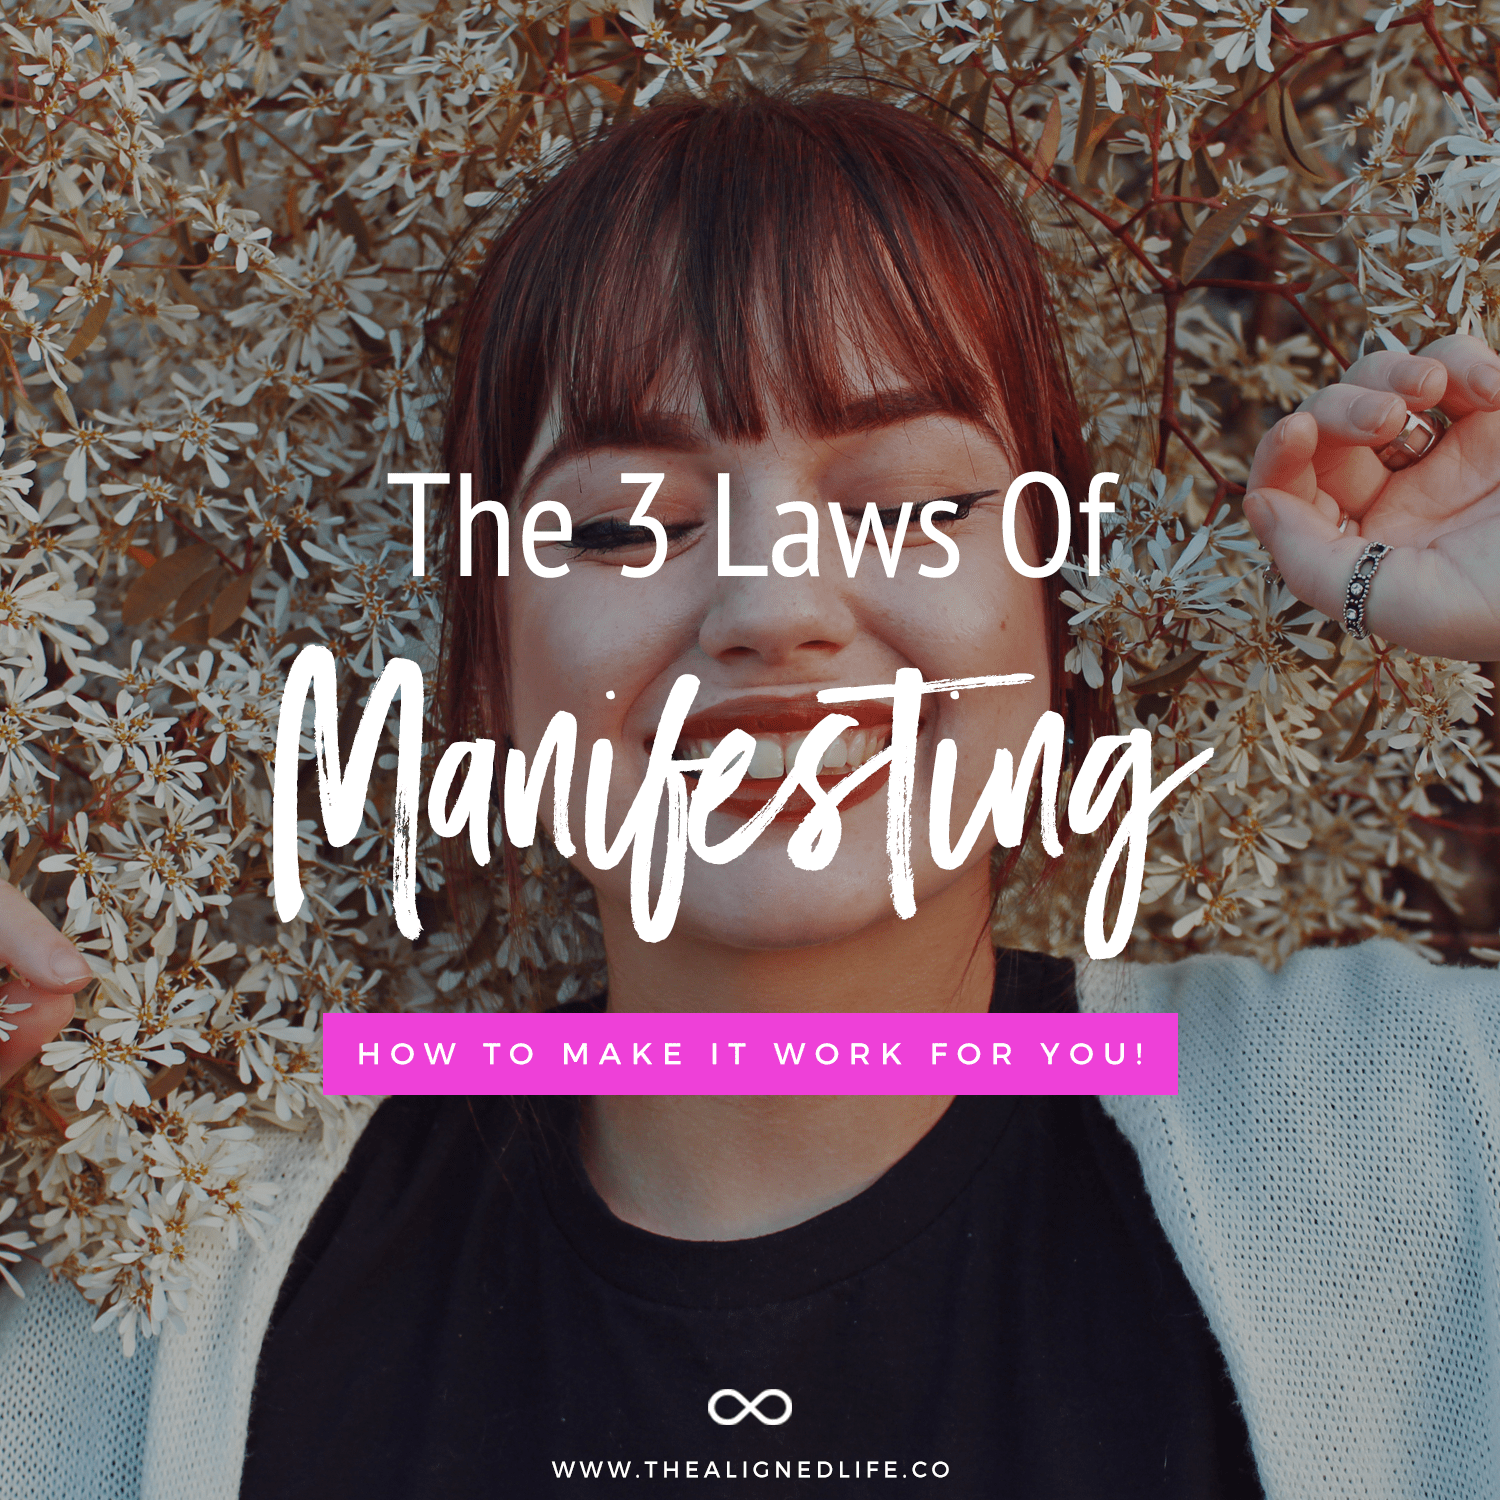 The 3 Laws Of Manifesting – How You Can Finally Make It Work For You!